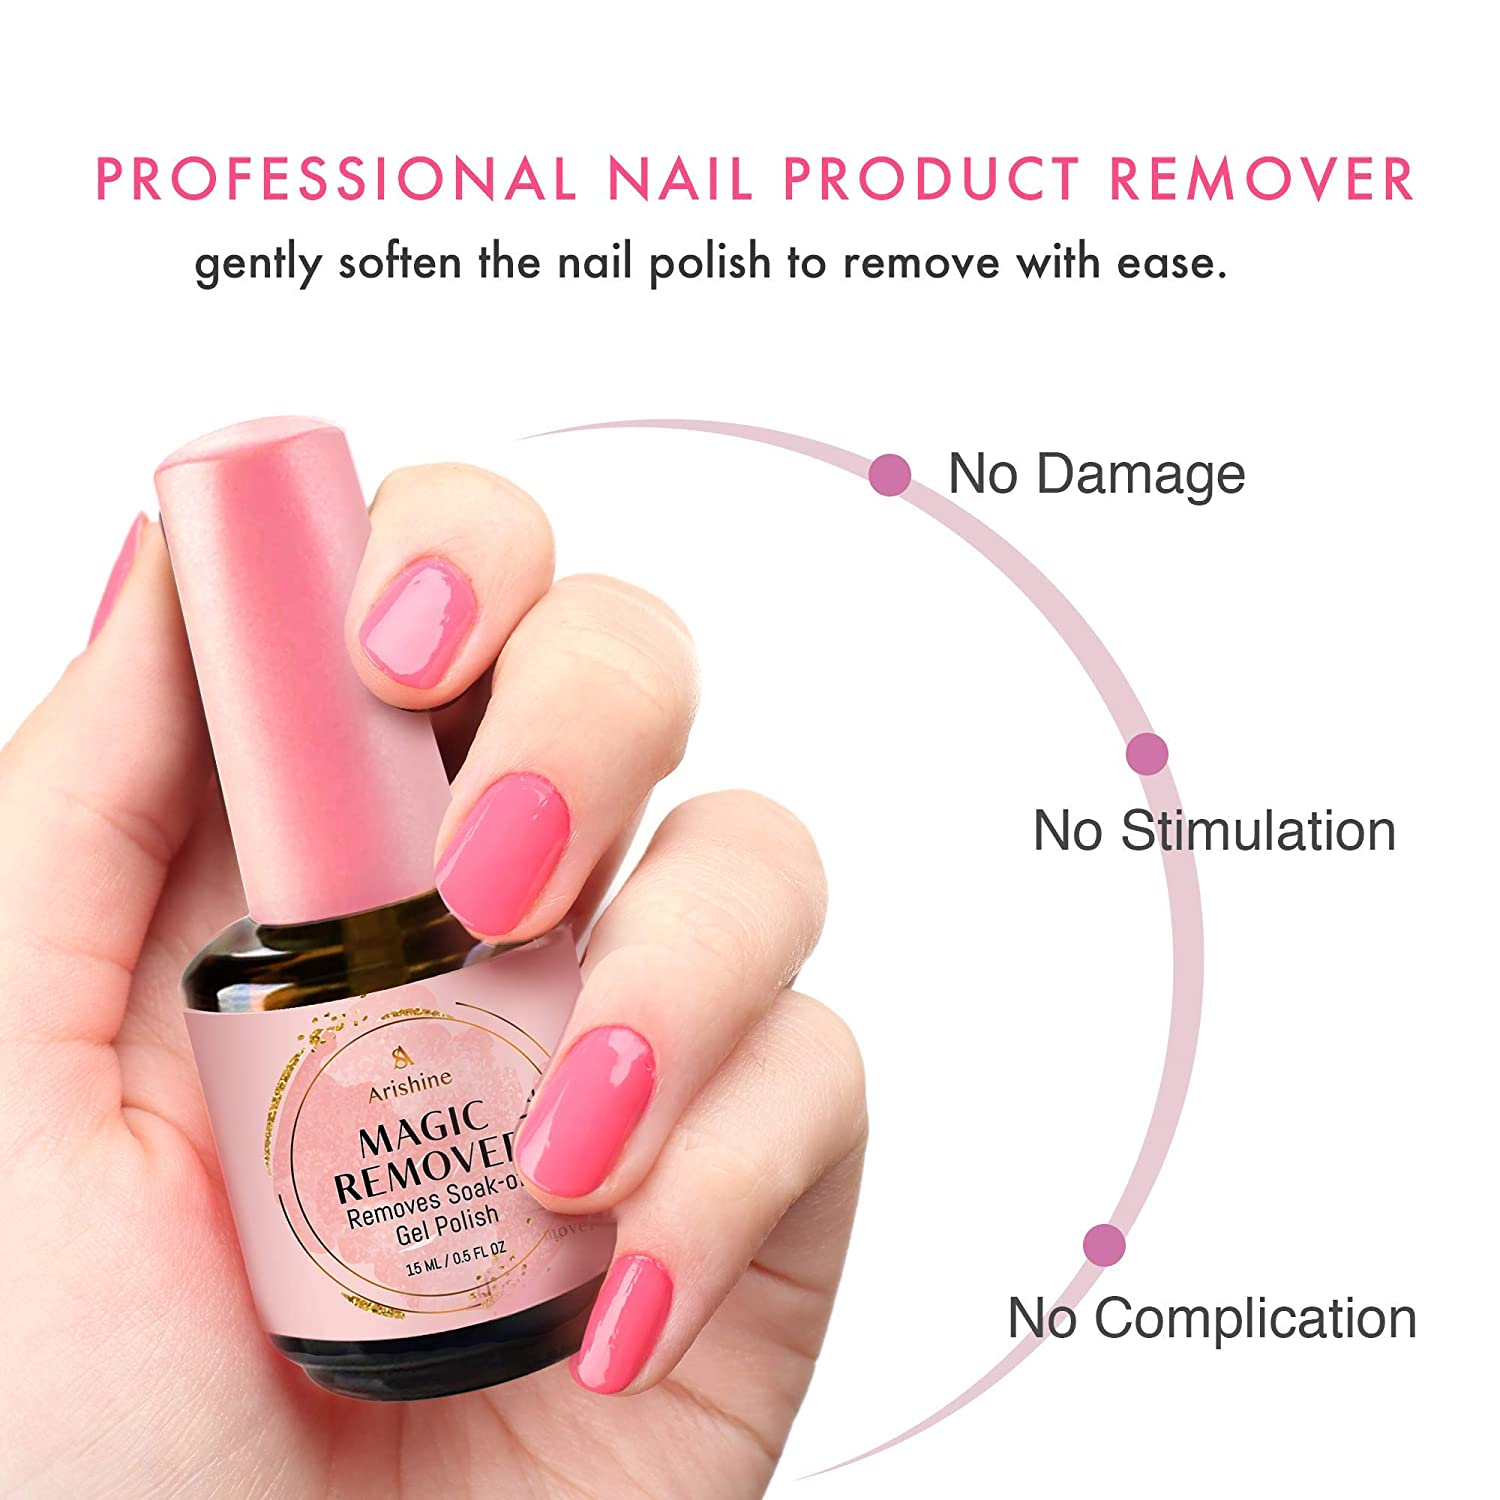 Arishine Magic Nail Polish Remover - Remove Gel Nail Polish Within 2-3 Minutes - Quick & Easy Polish Remover - No Need For Foil, Soaking Or Wrapping, 0.5 Fl Oz